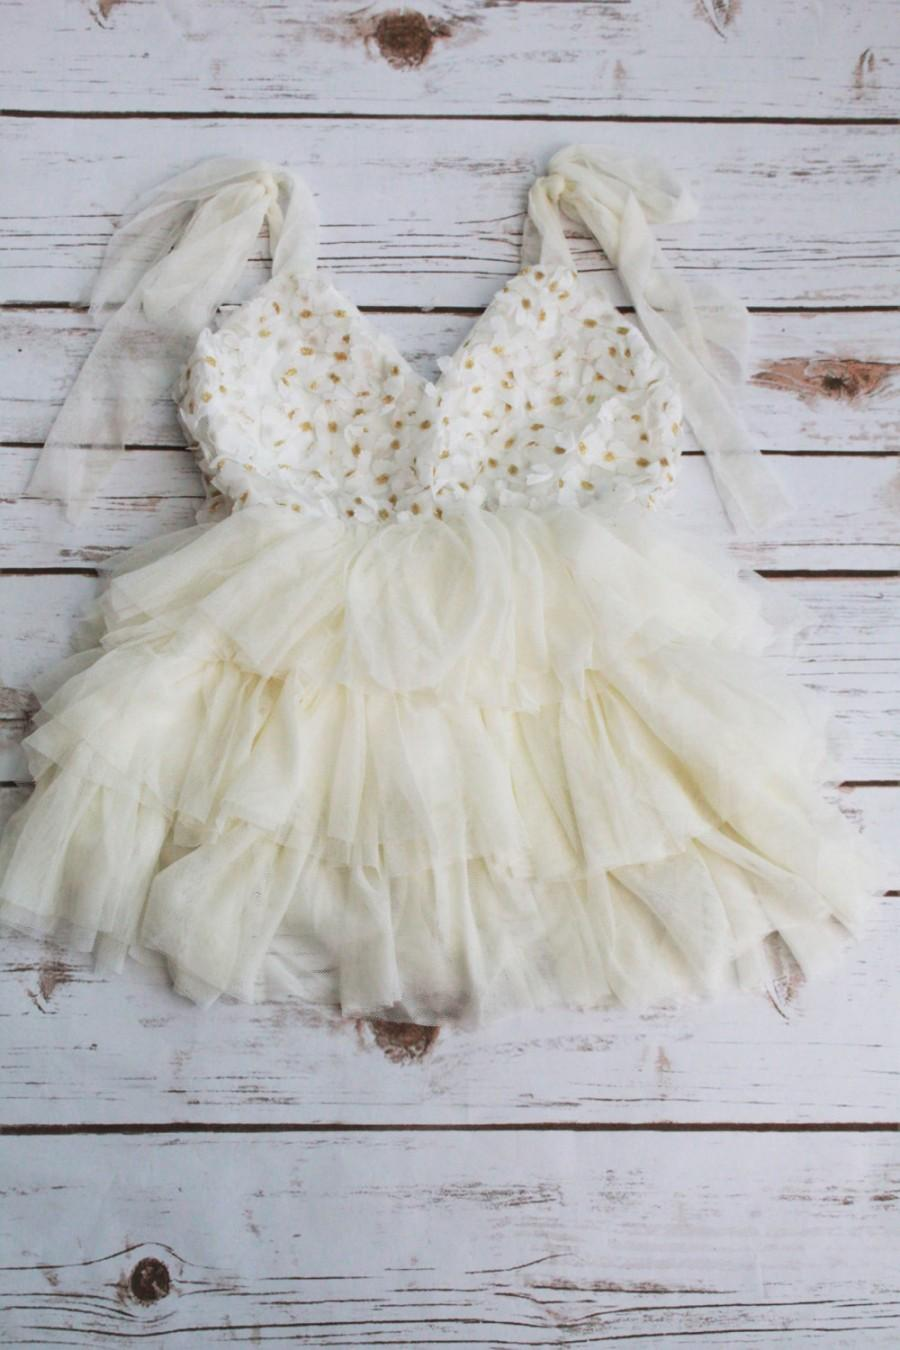 Boda - Ivory Tutu Boho Girl  Dress- BOho Lace Flower Girl-Beige Lace Birthday Gils